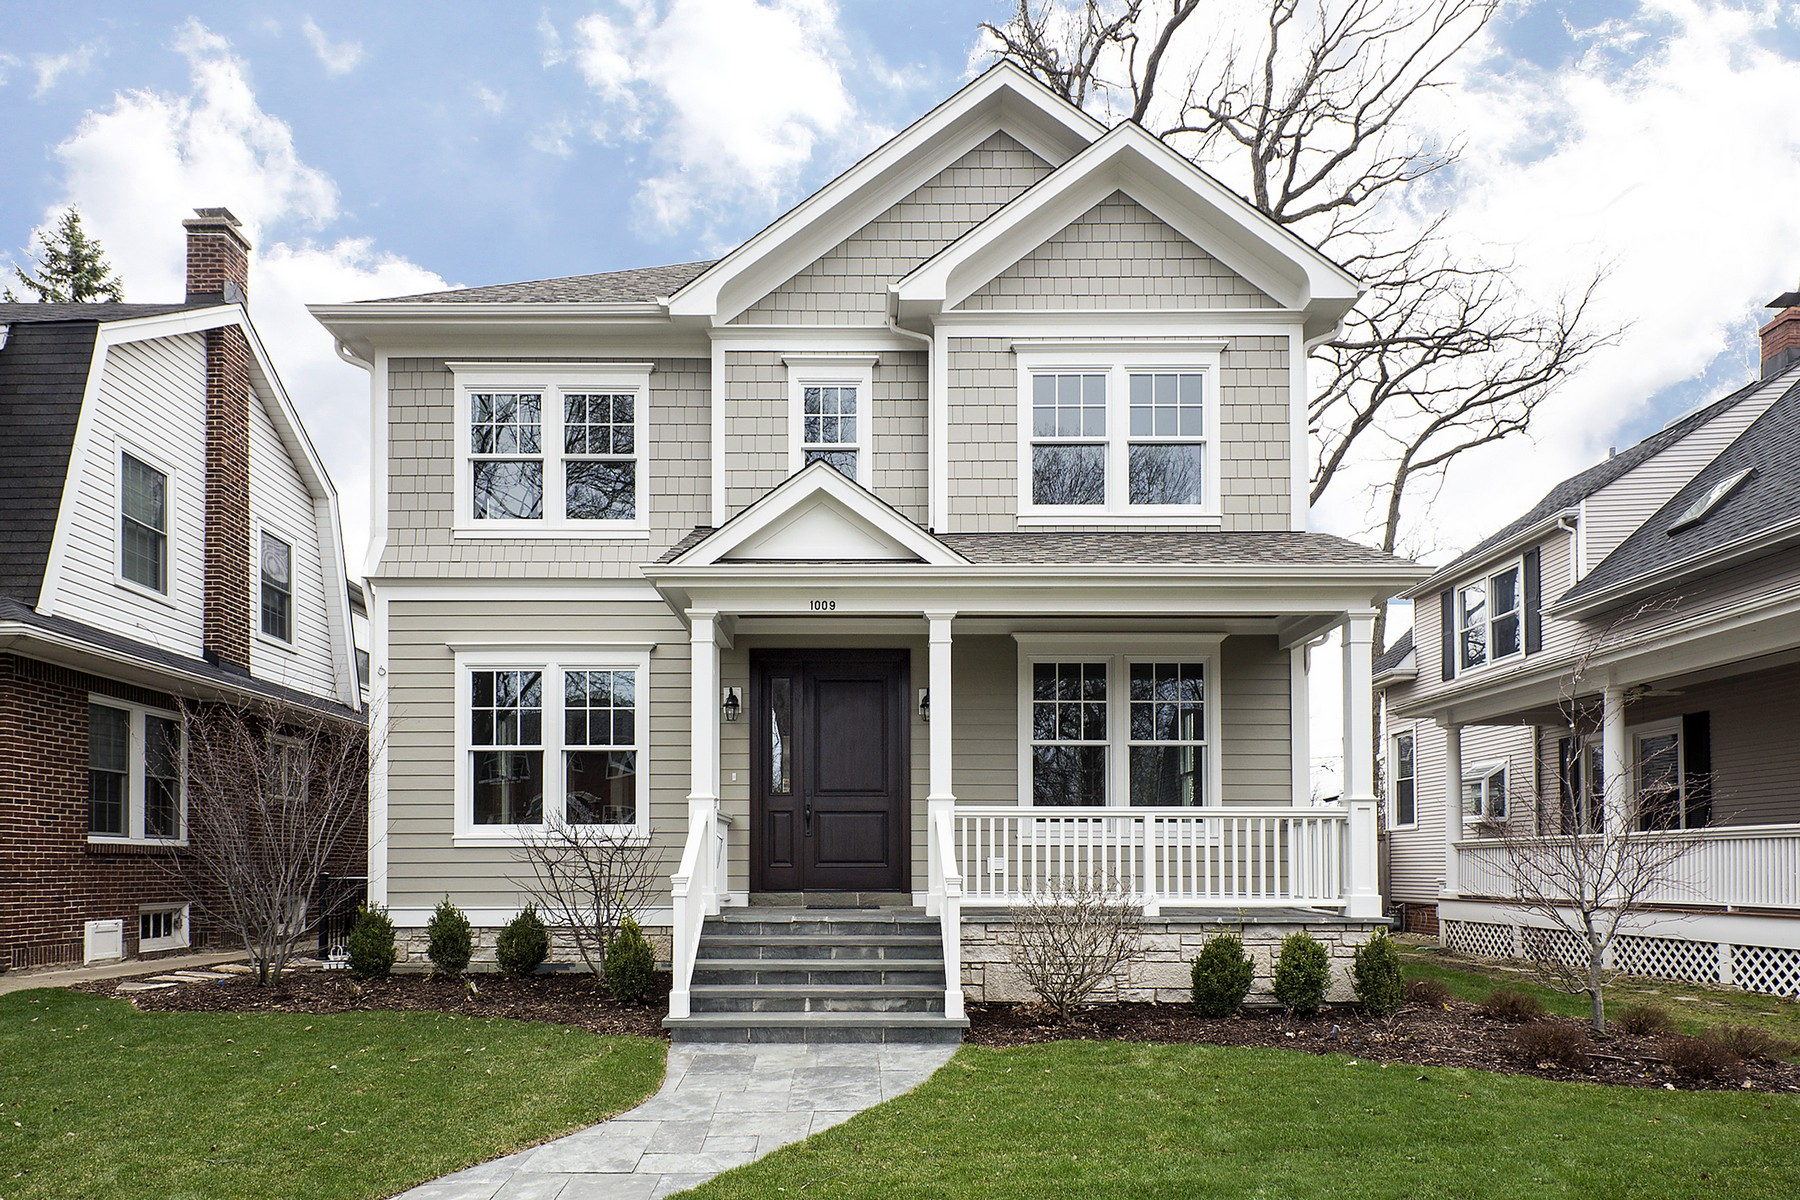 Single Family Home for Sale at New Construction Home 1009 Oakwood Avenue Wilmette, Illinois, 60091 United States